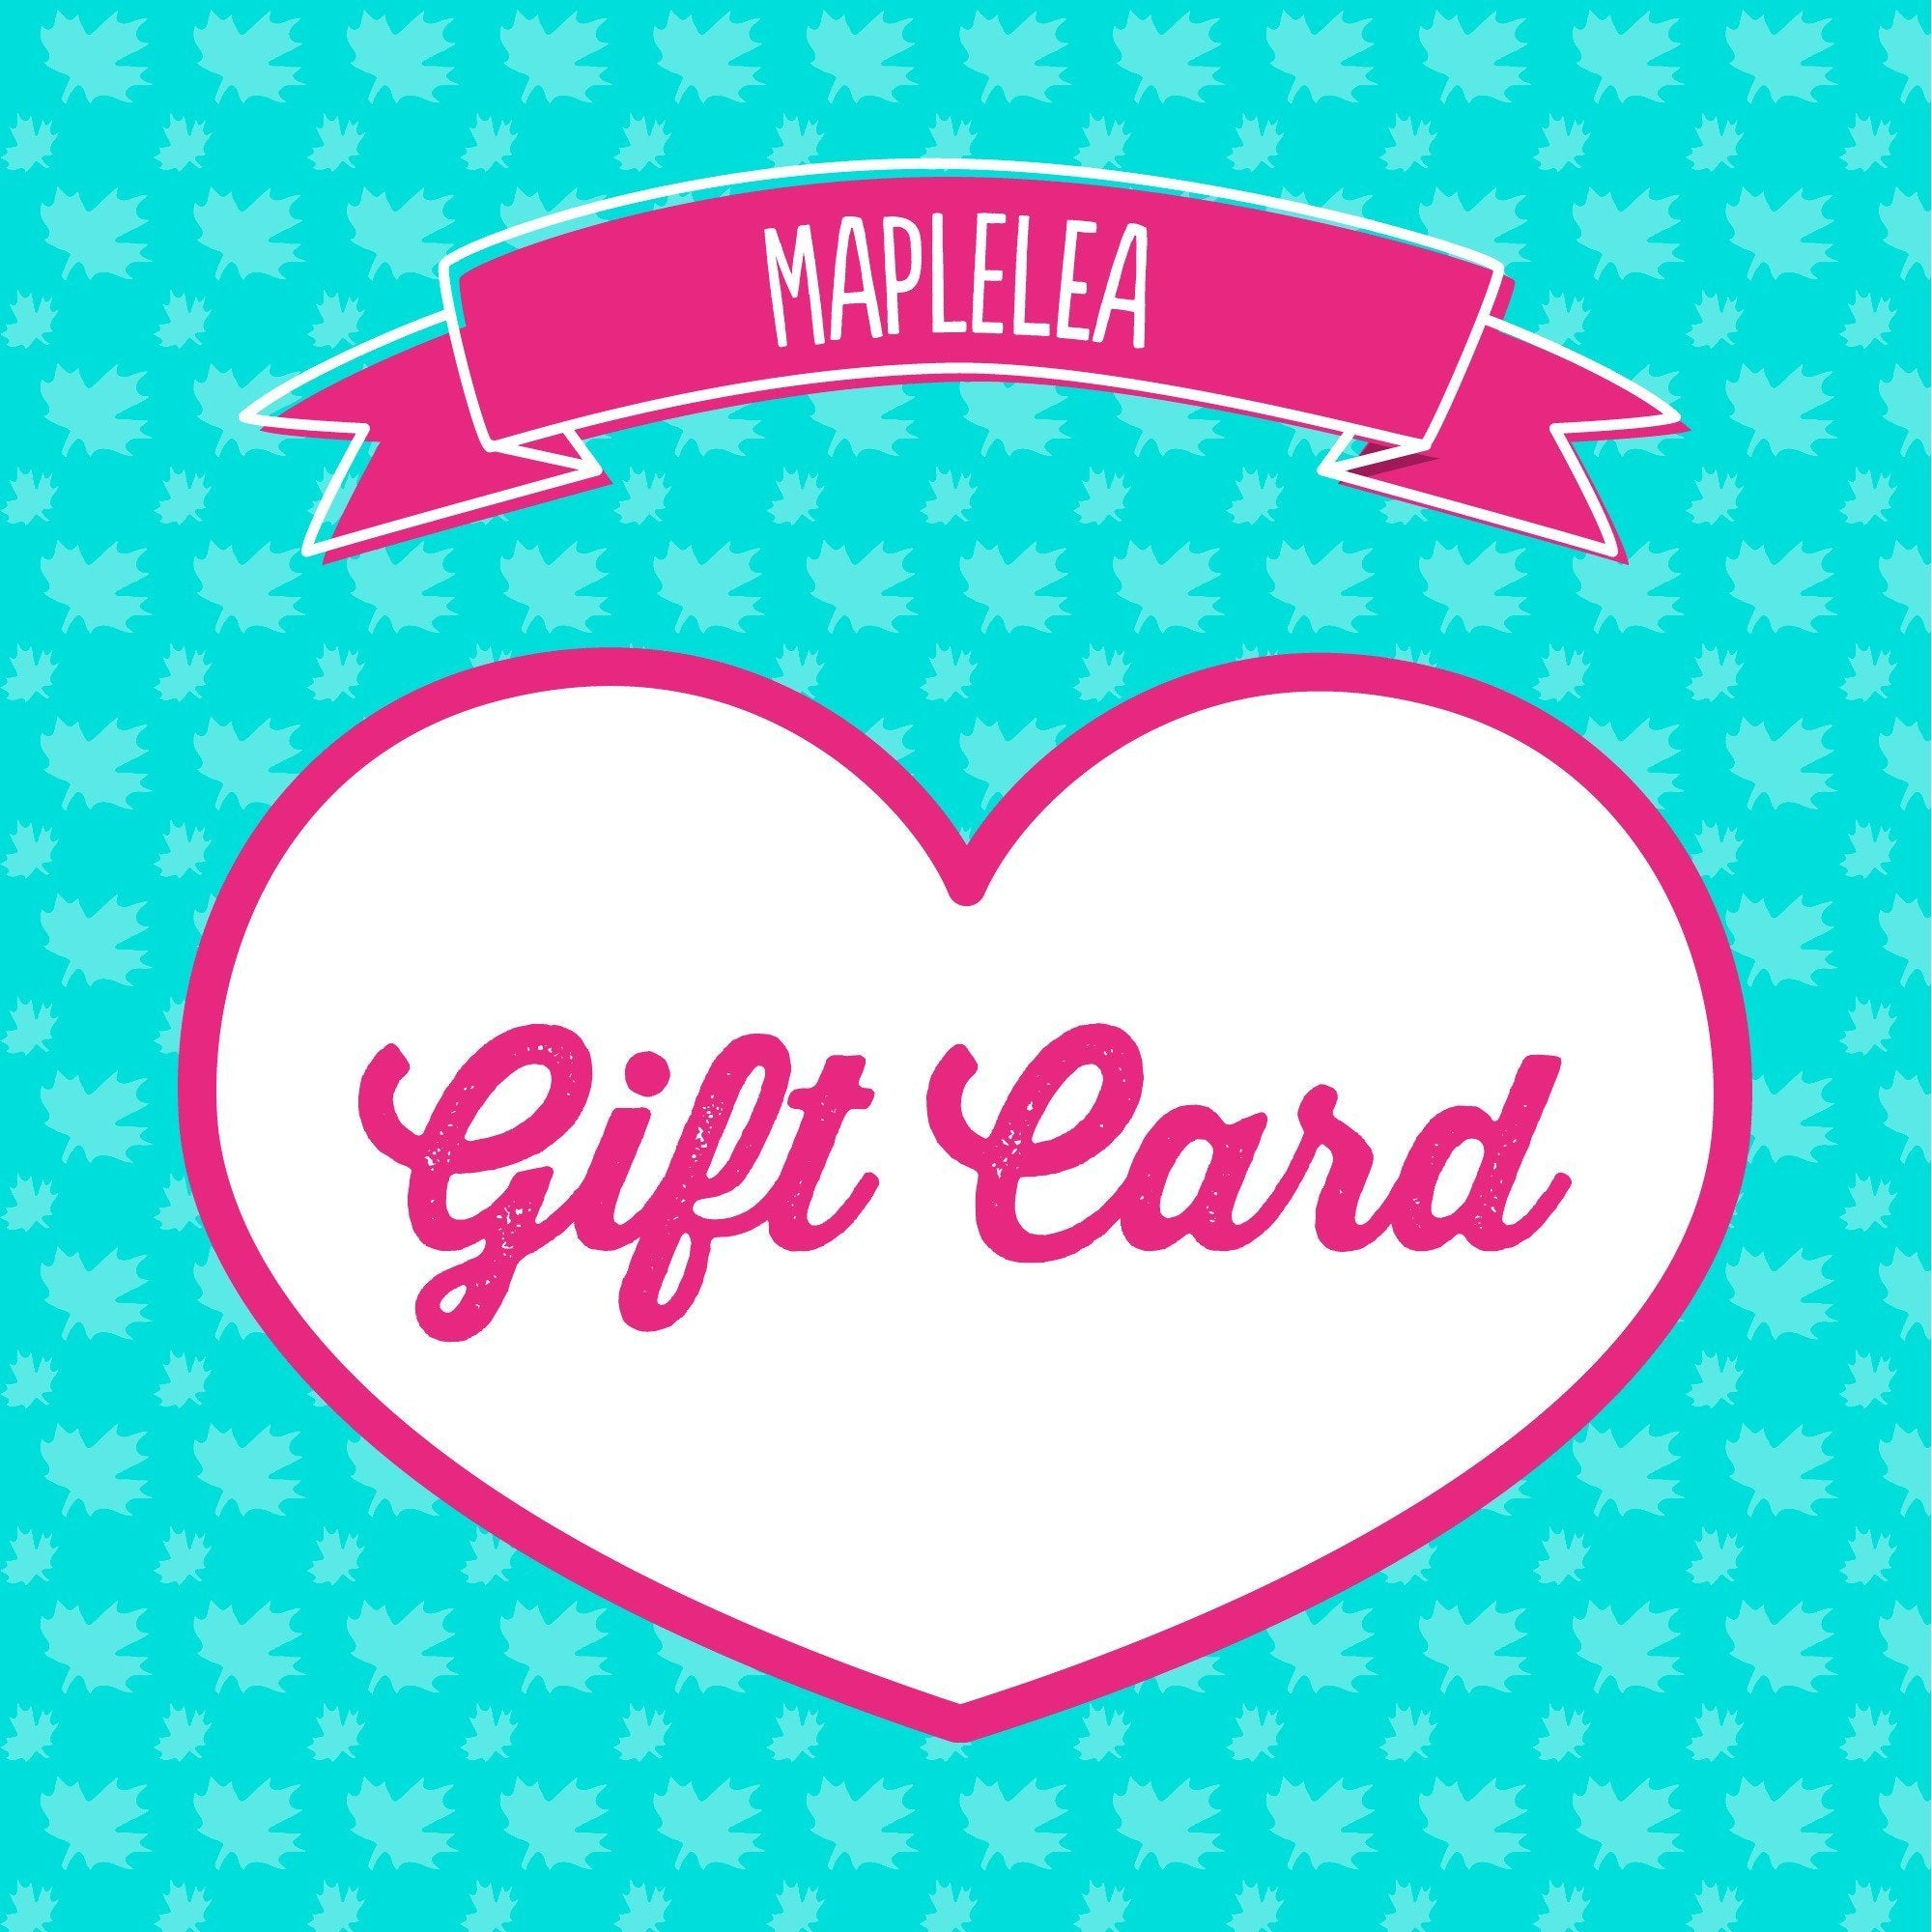 Maplelea Gift Card